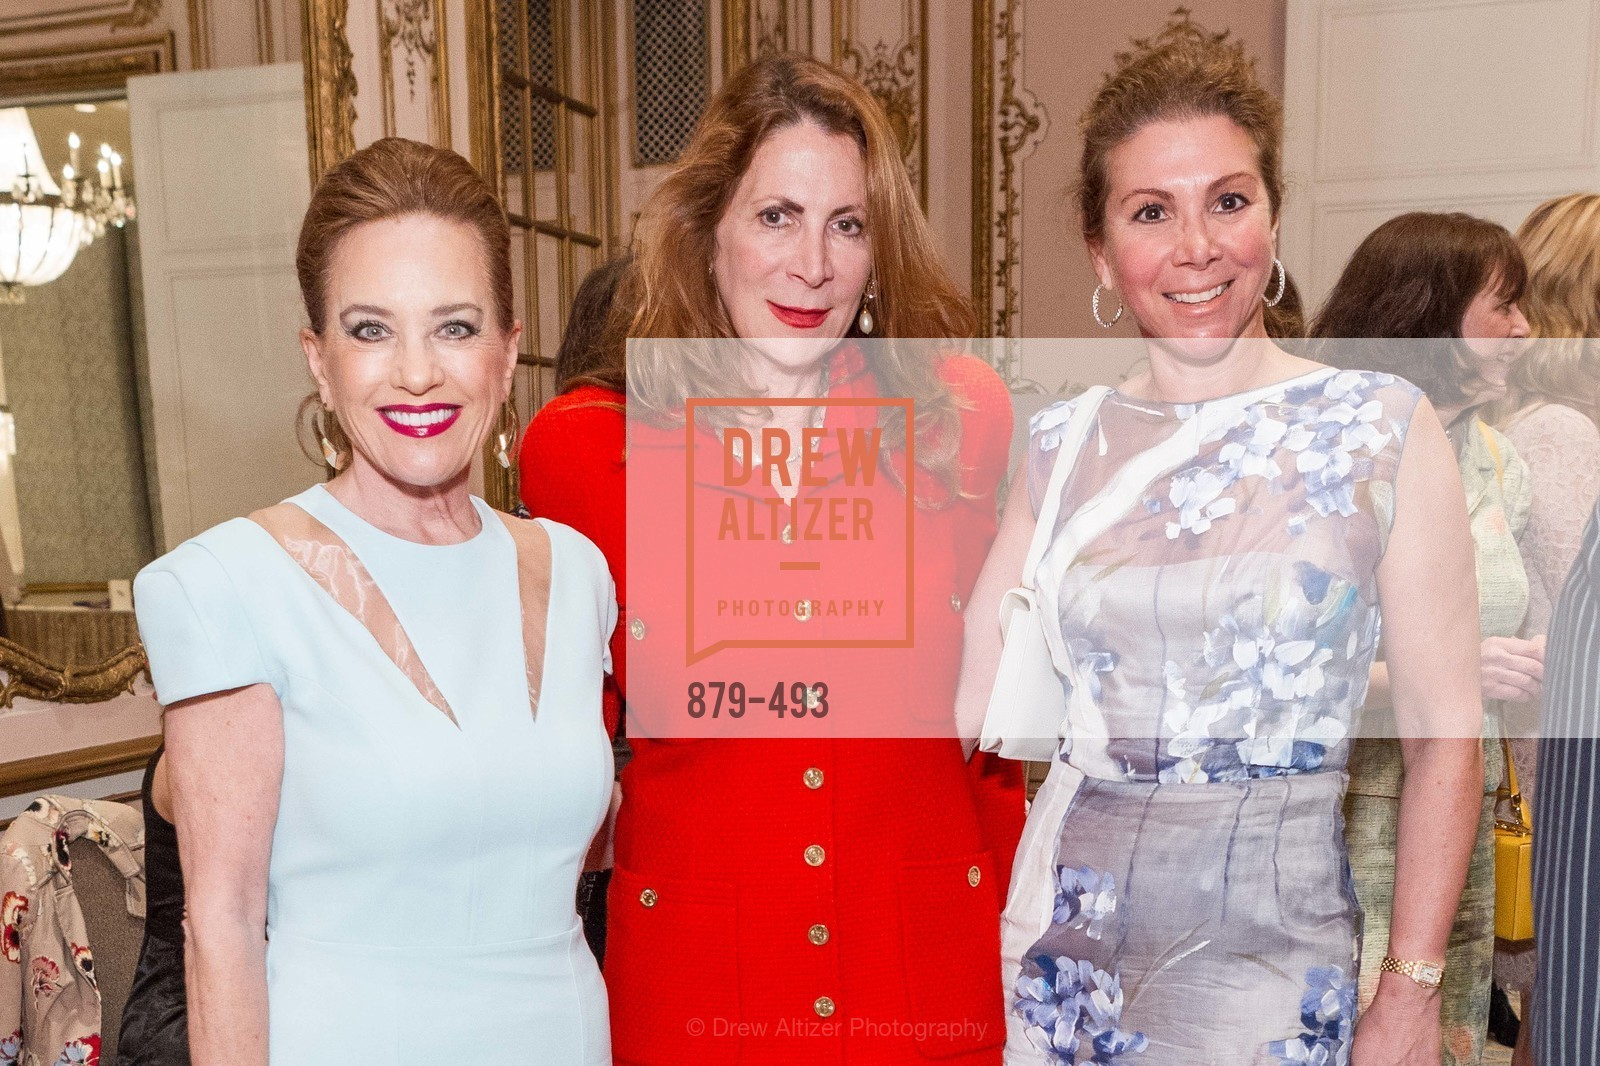 Robin Collins, Patricia Ferrin Loucks, Debra Leylegian, SAN FRANCISCO BALLET AUXULIARY 2014 Fashion Show, US. The Fairmont, April 3rd, 2014,Drew Altizer, Drew Altizer Photography, full-service event agency, private events, San Francisco photographer, photographer California